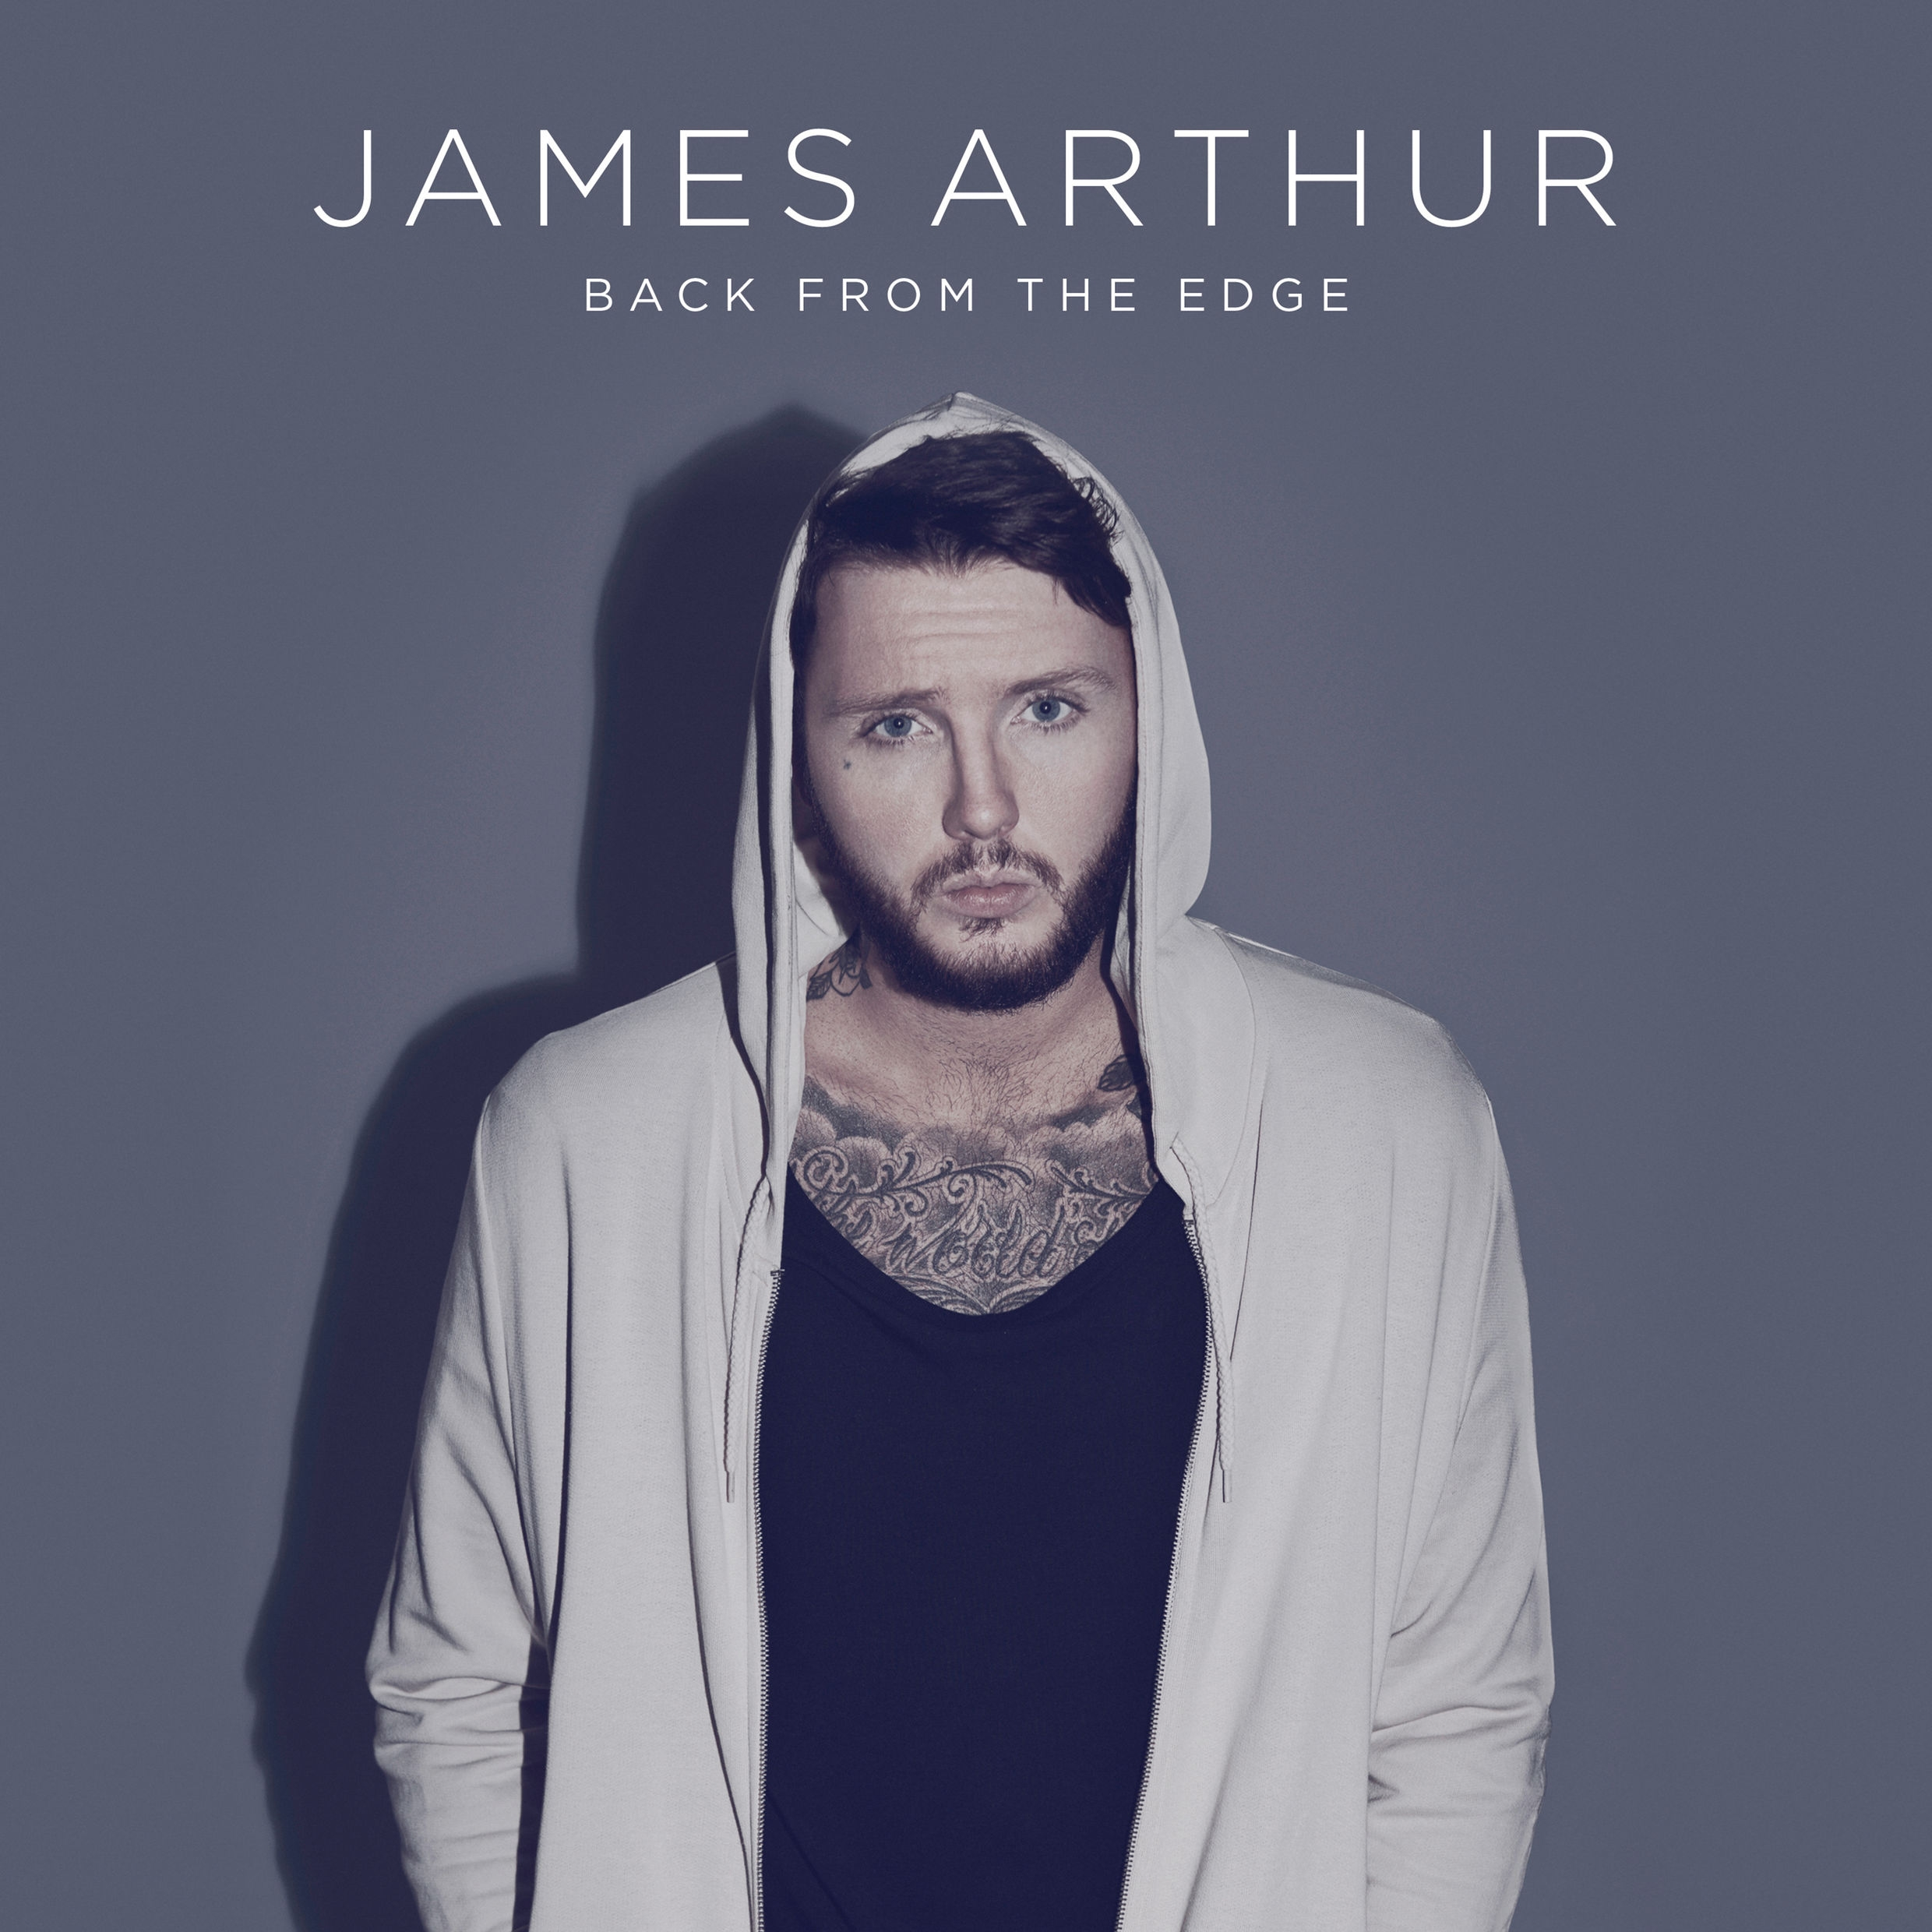 james-arthur-back-from-the-edge-2016-2480x2480